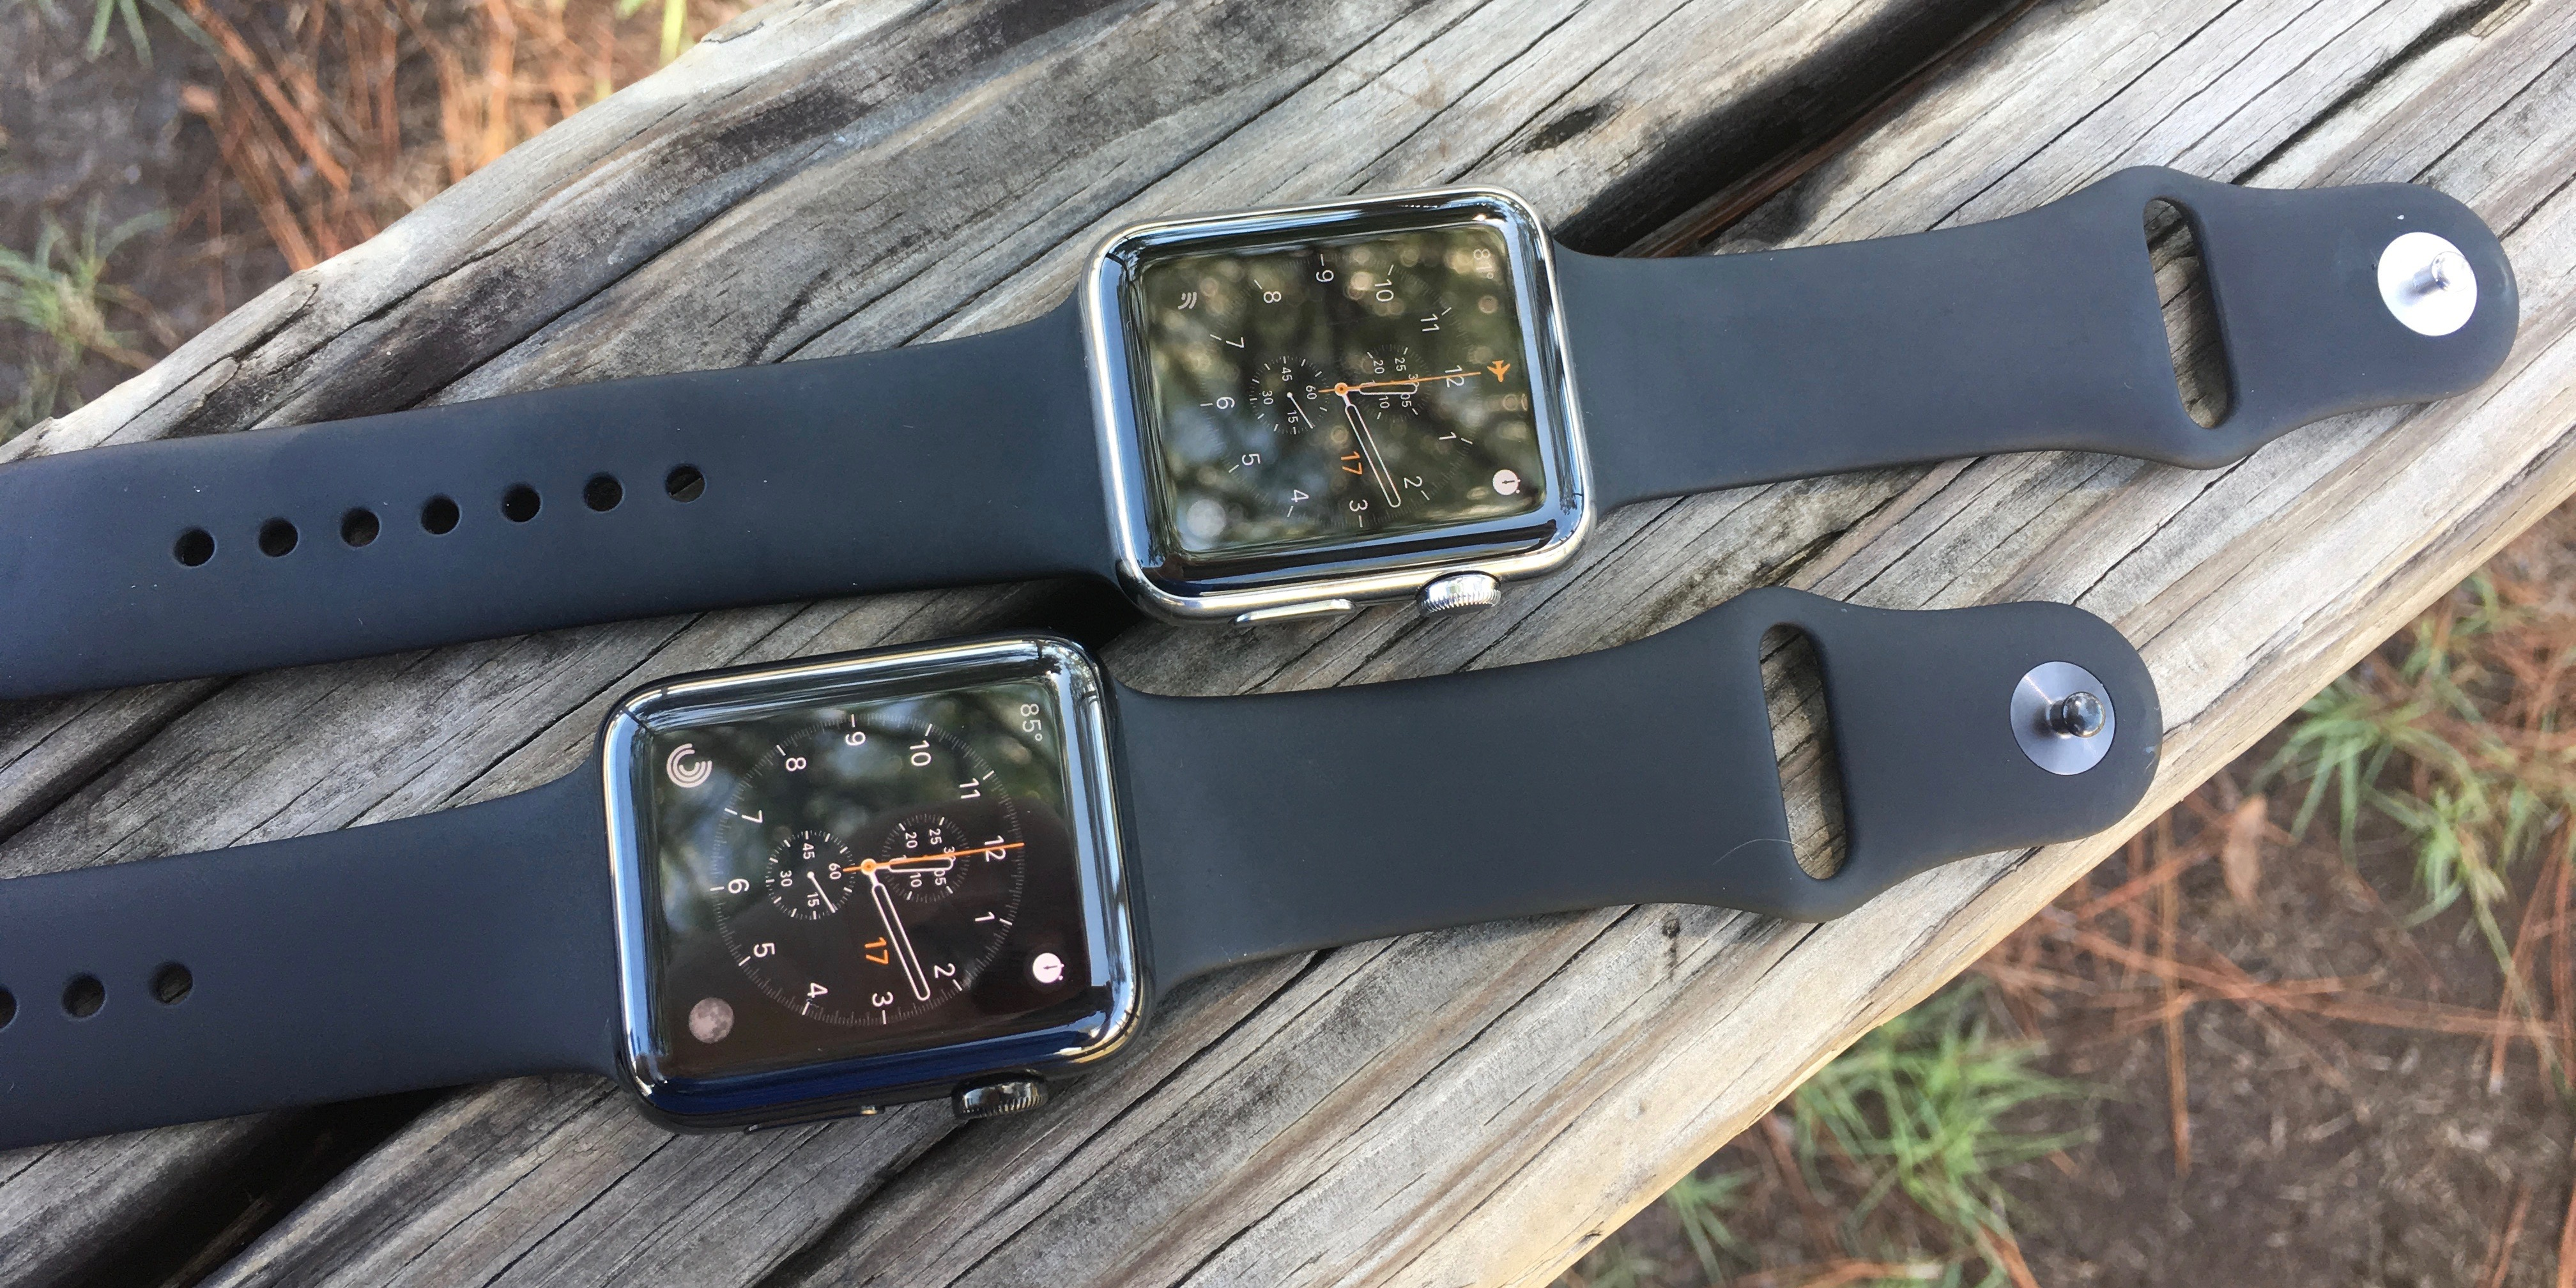 Apple Watch Series 2 first gen